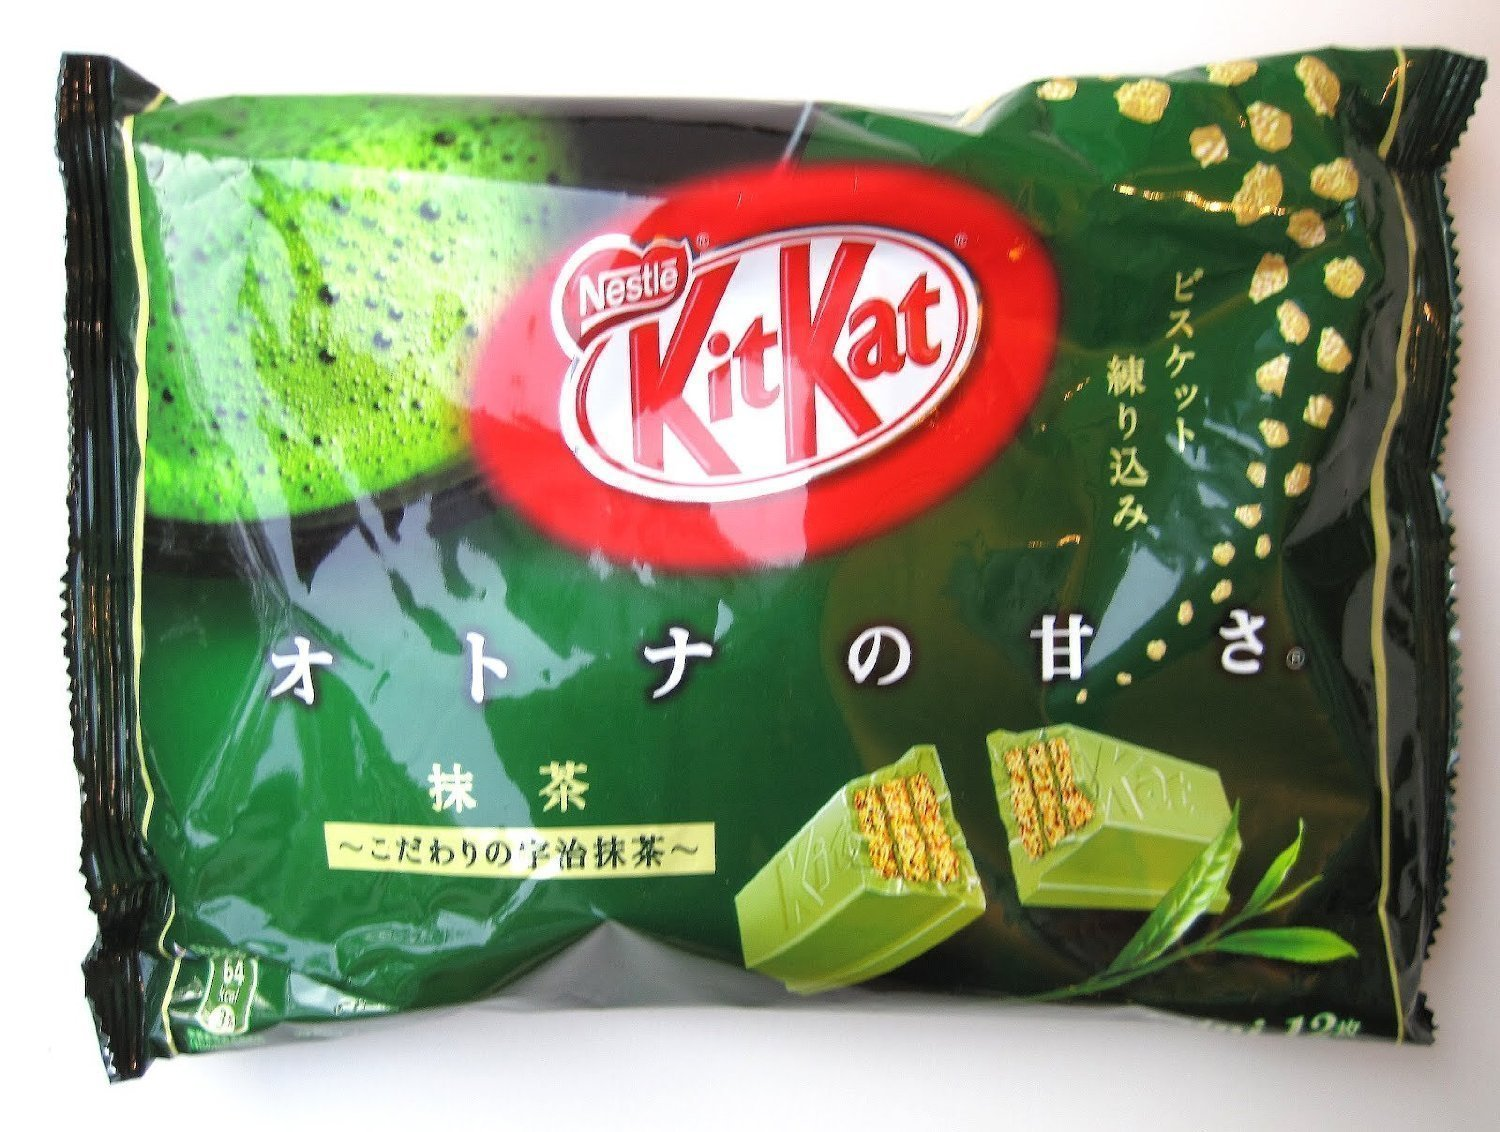 Japanese Kit Kat Maccha Green Tea Flavor (5 Bag) (4.91oz x 5)